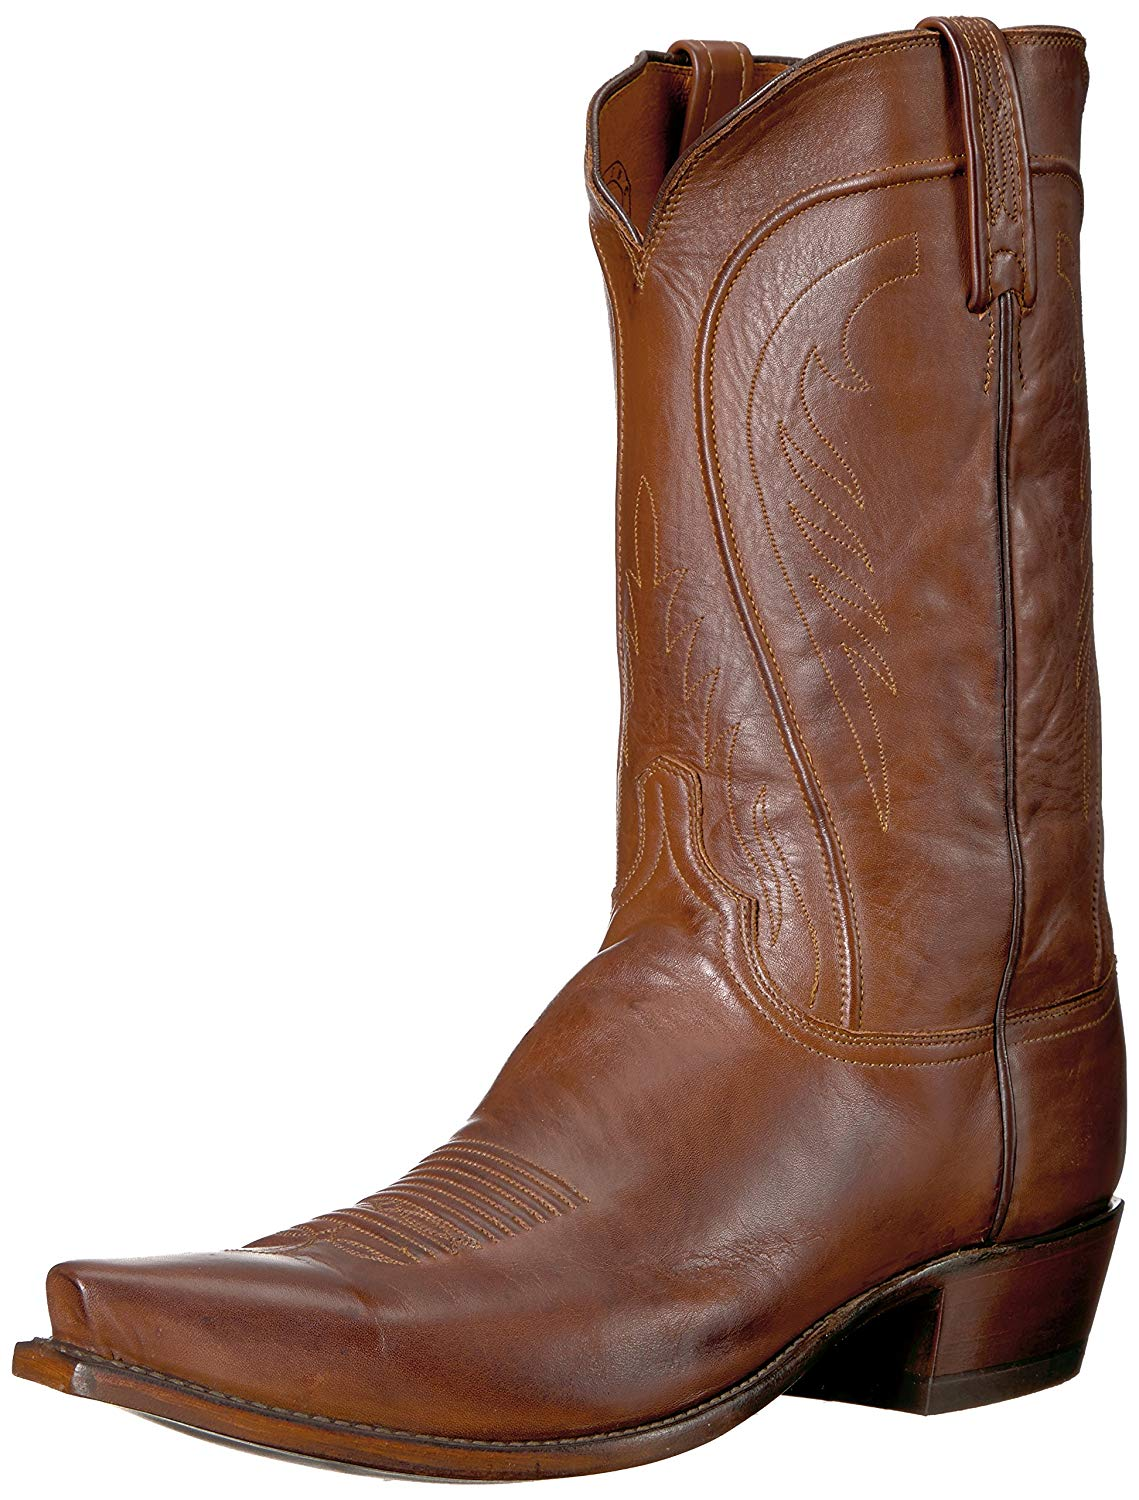 1883 by Lucchese Men's N1596.54 Western Boot